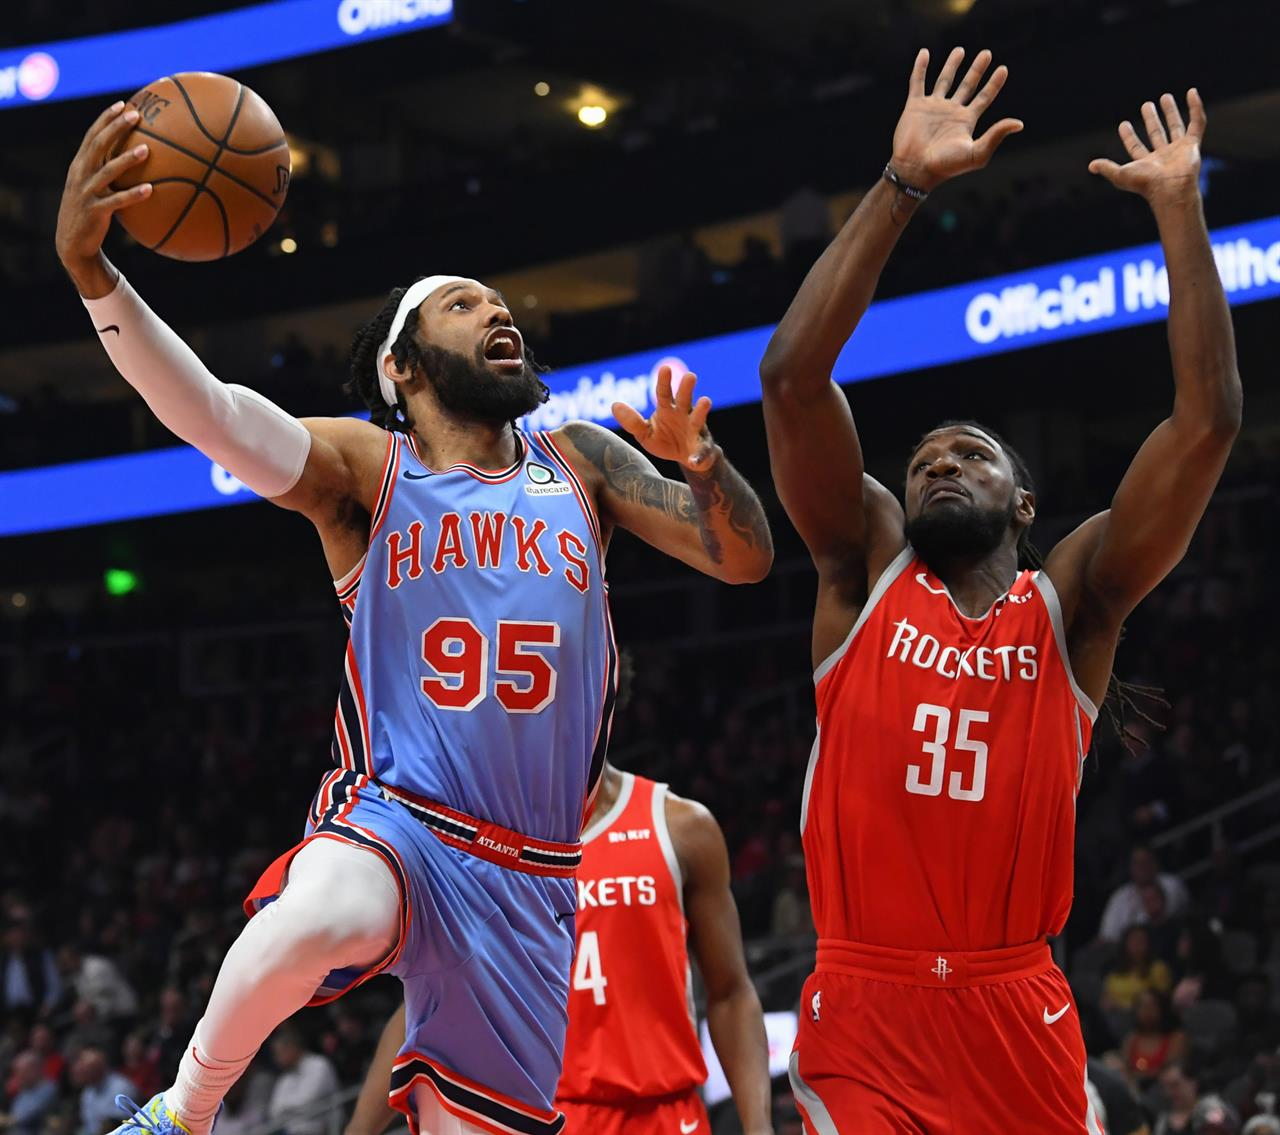 James Harden Basketball Camp: Harden, Capela Lead Rockets To Easy Win Over Hawks